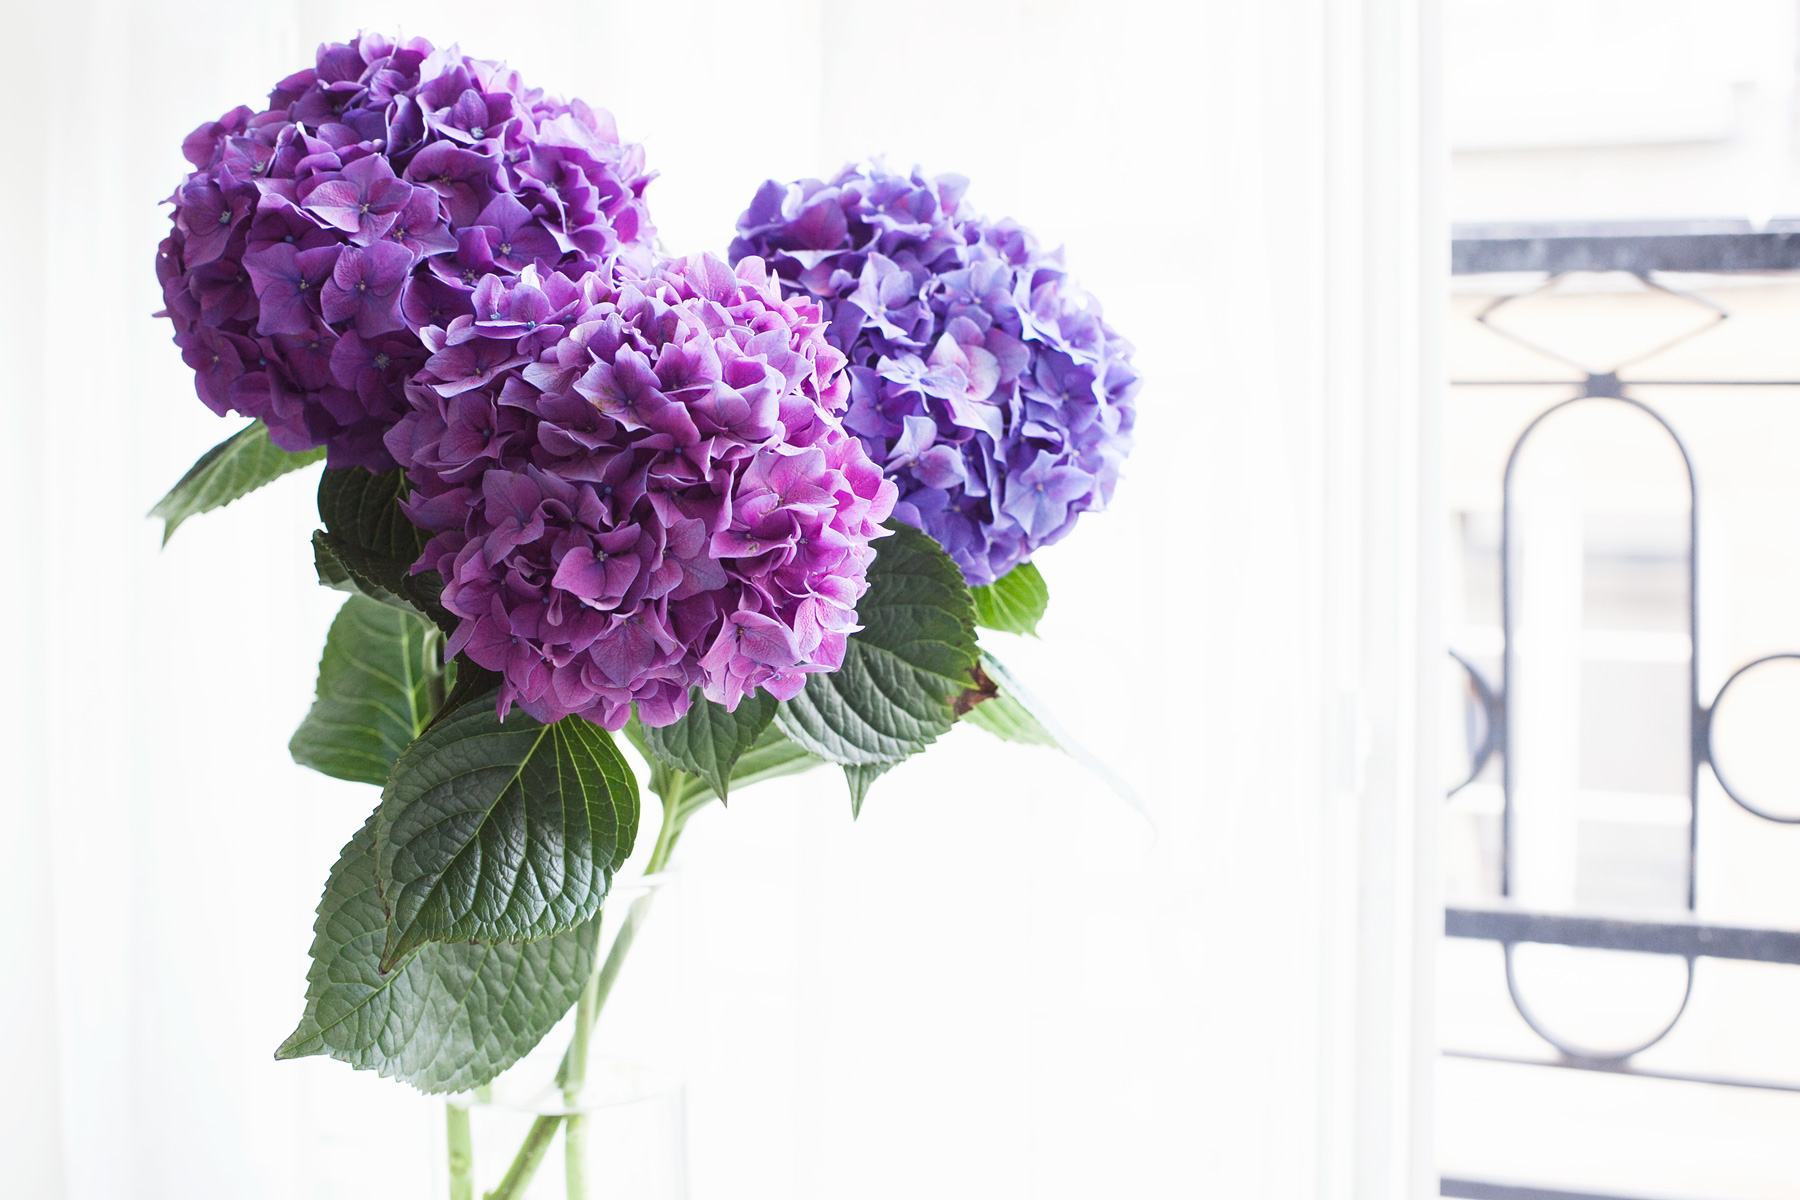 Hydrangeas by Carin Olsson (Paris in Four Months)